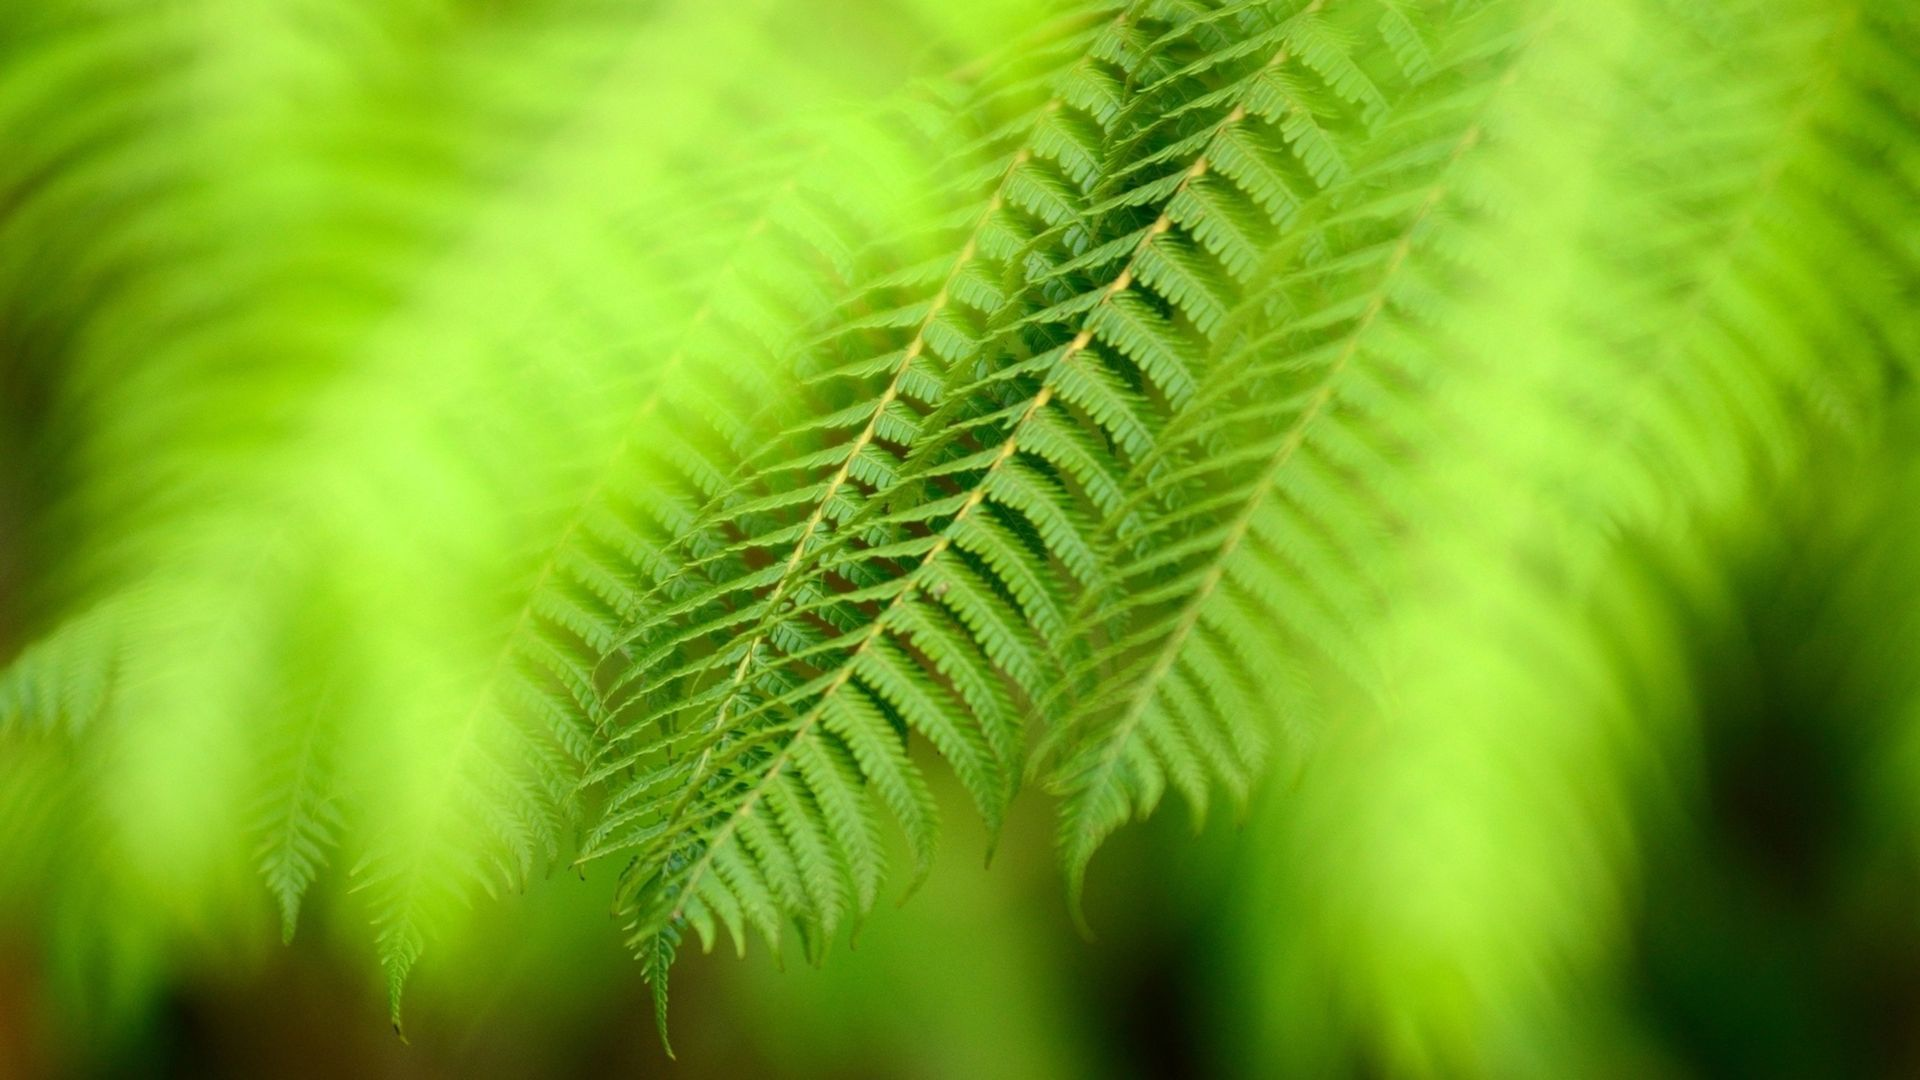 Fern hd wallpaper download